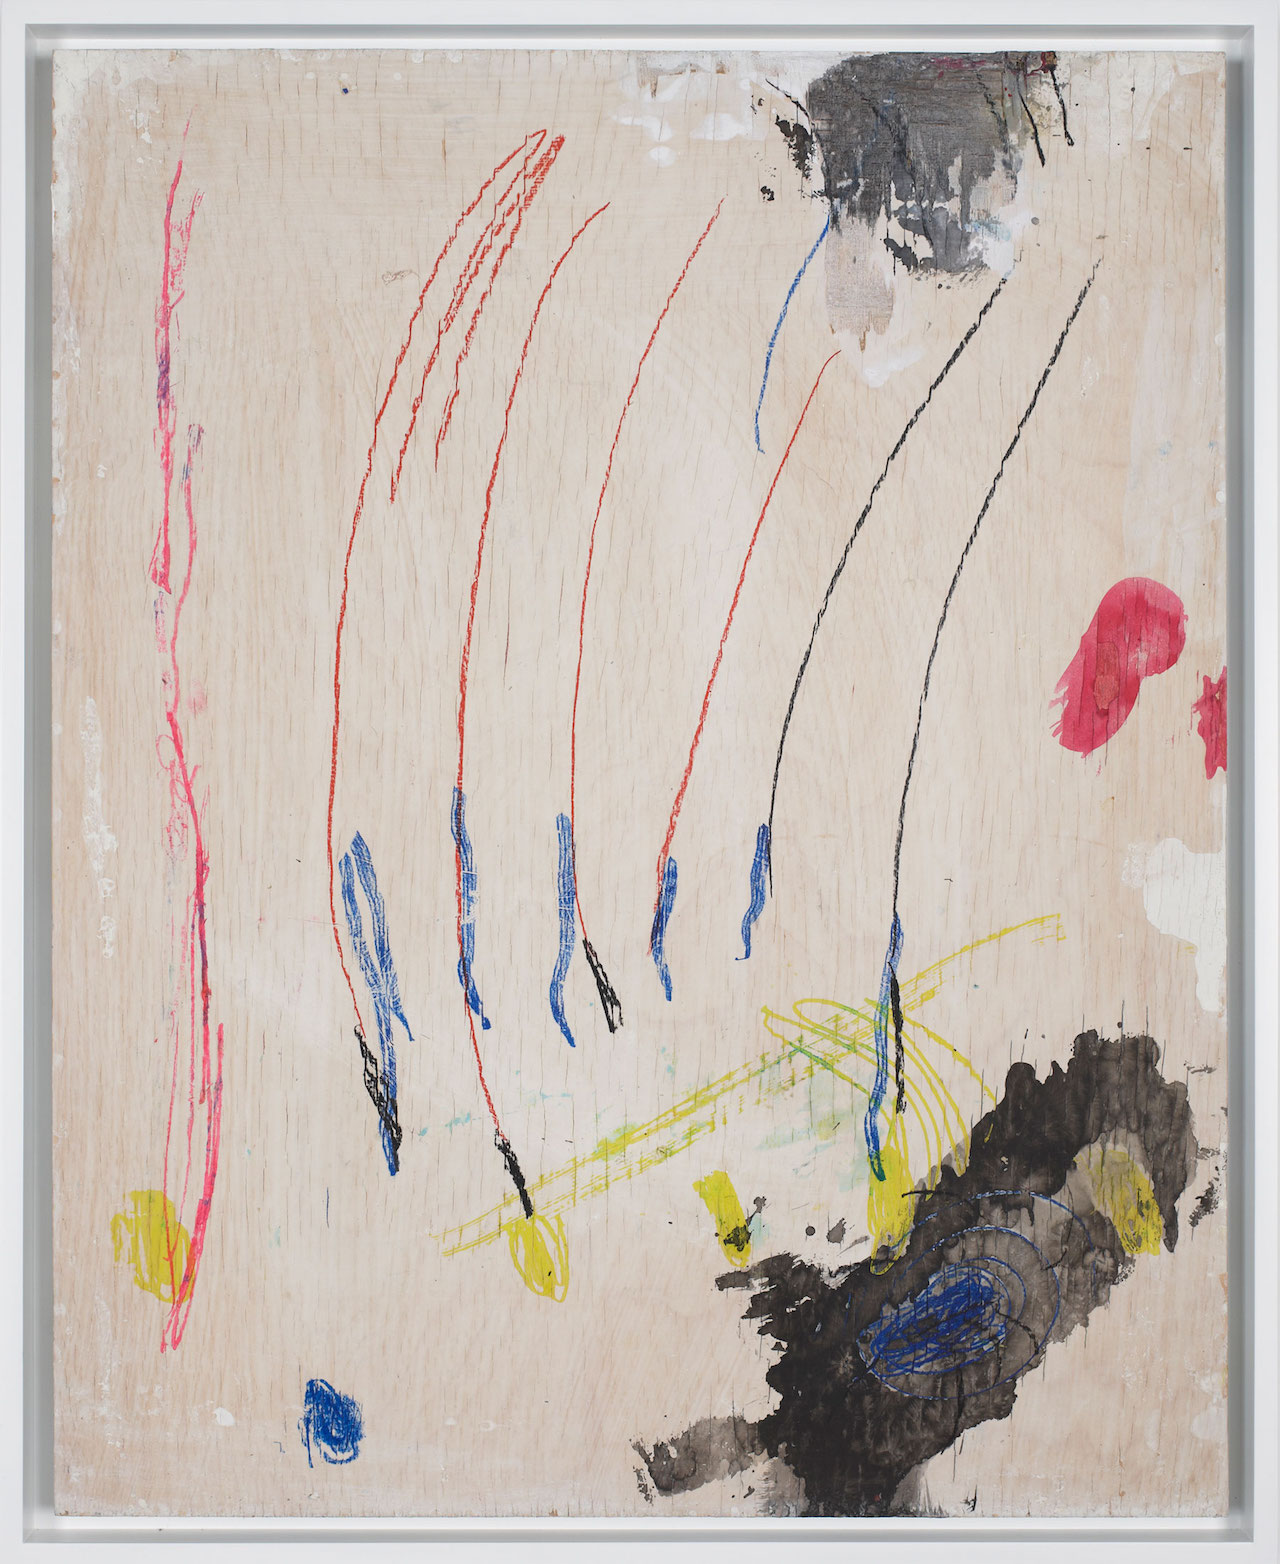 """Josh Smith, """"Untitled"""" (2015), rabbit skin glue, calcium carbonate, white pigment, ink, watercolor, graphite, grease pencil, paint pen, and transfer drawing on panel"""